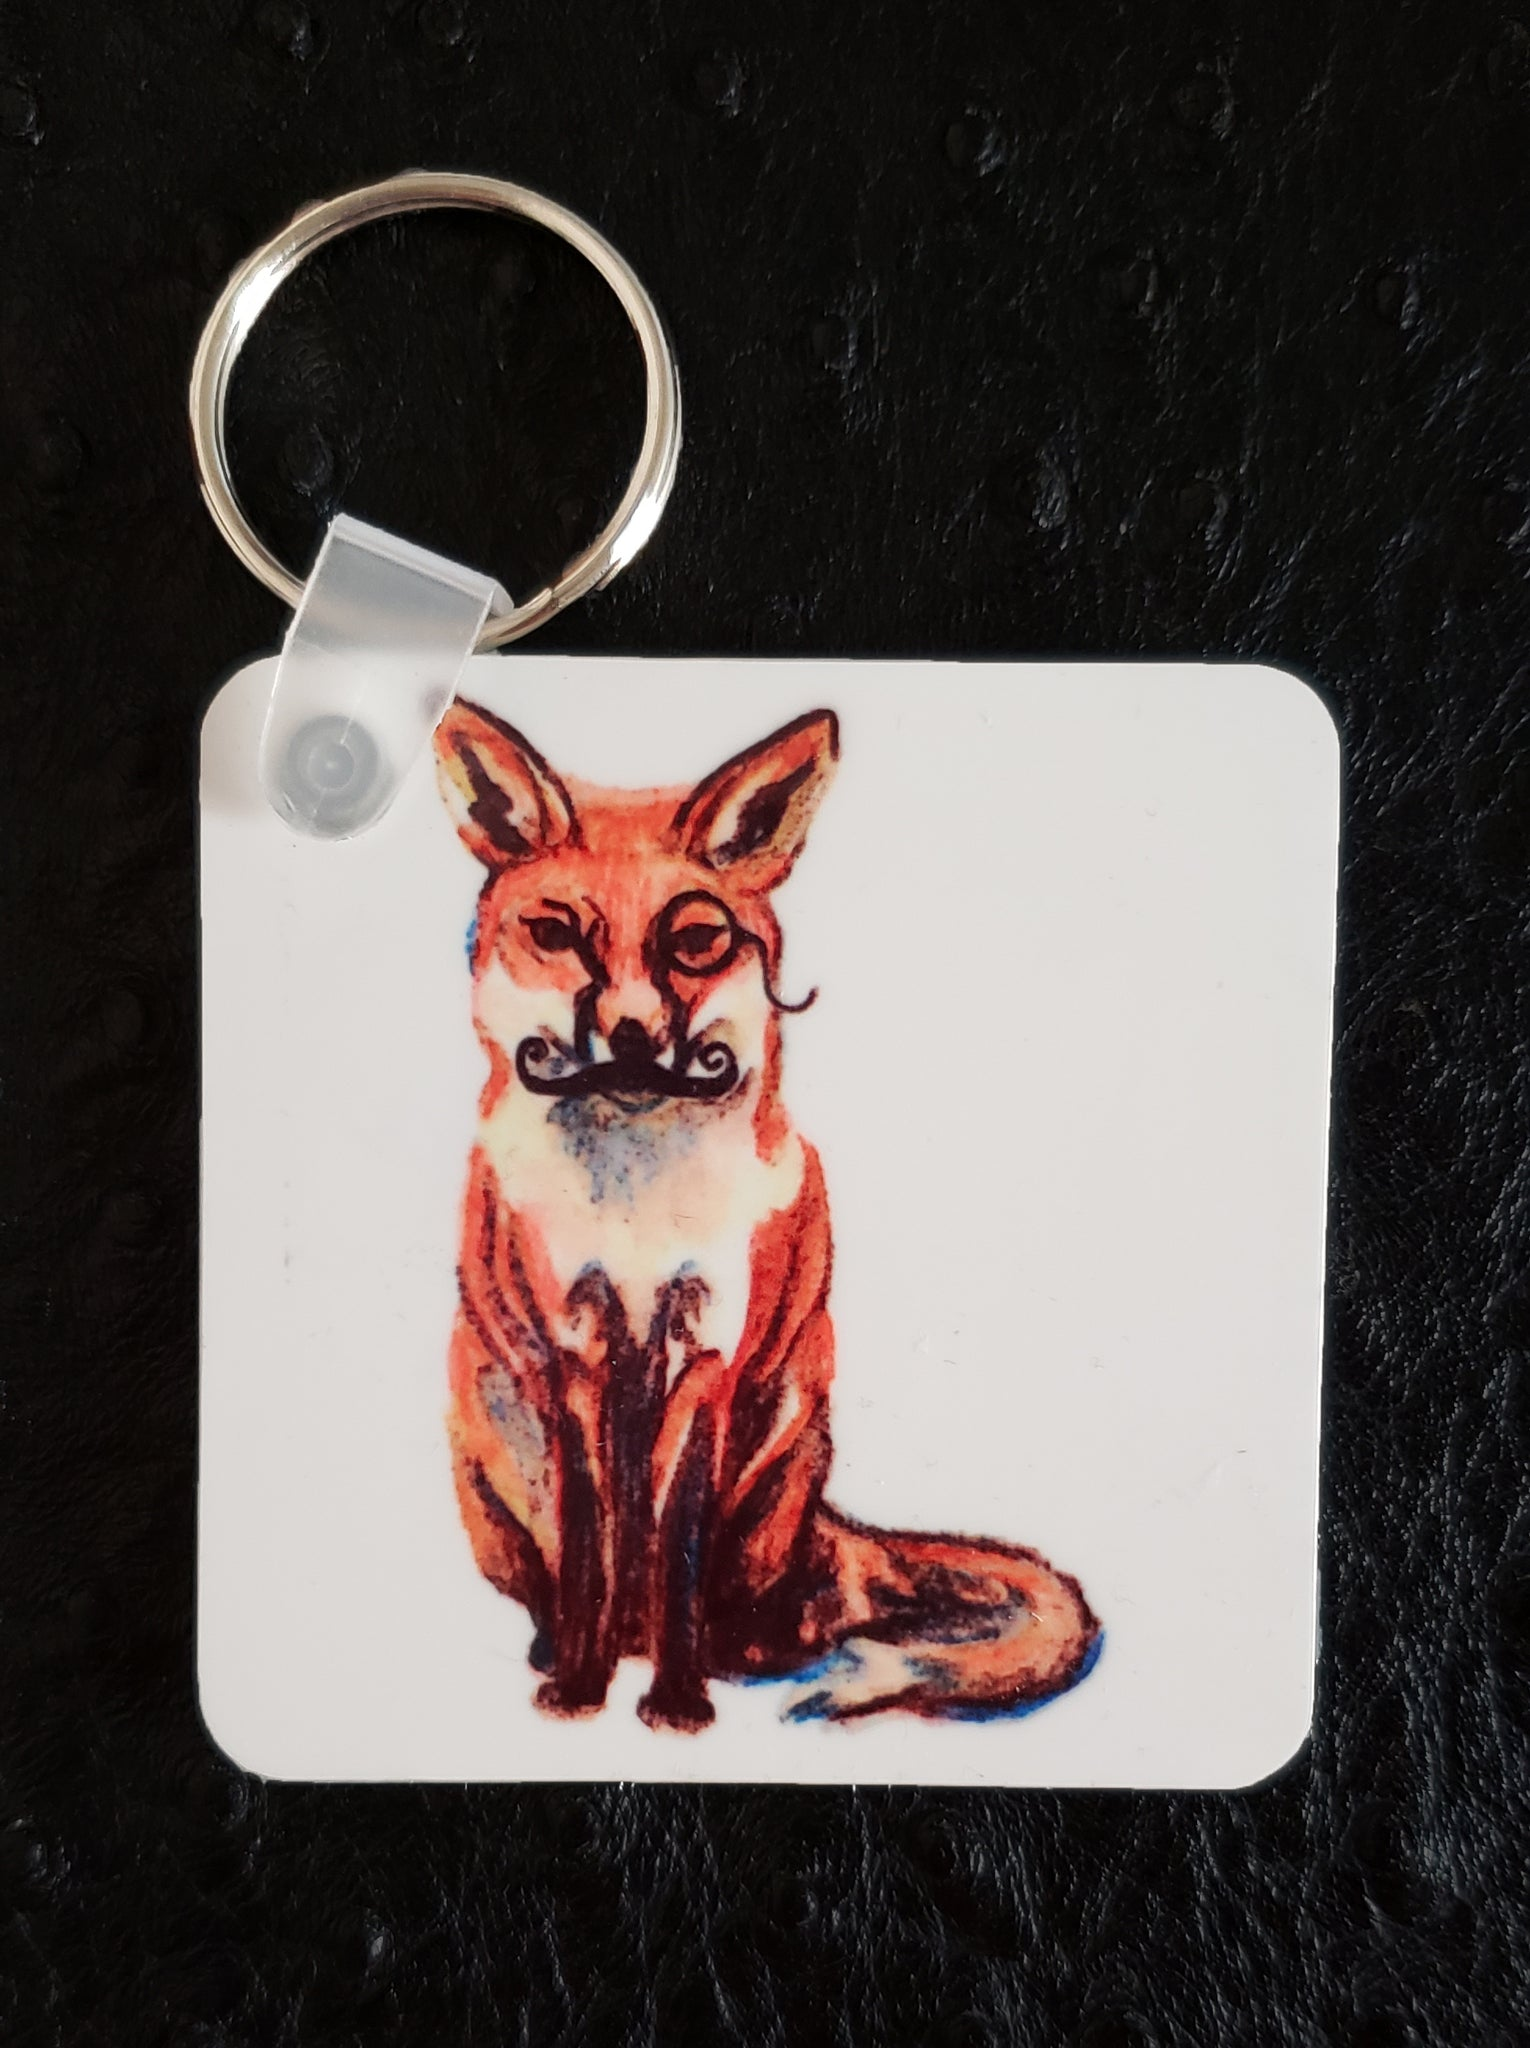 Foxy Square Acrylic Key Chain